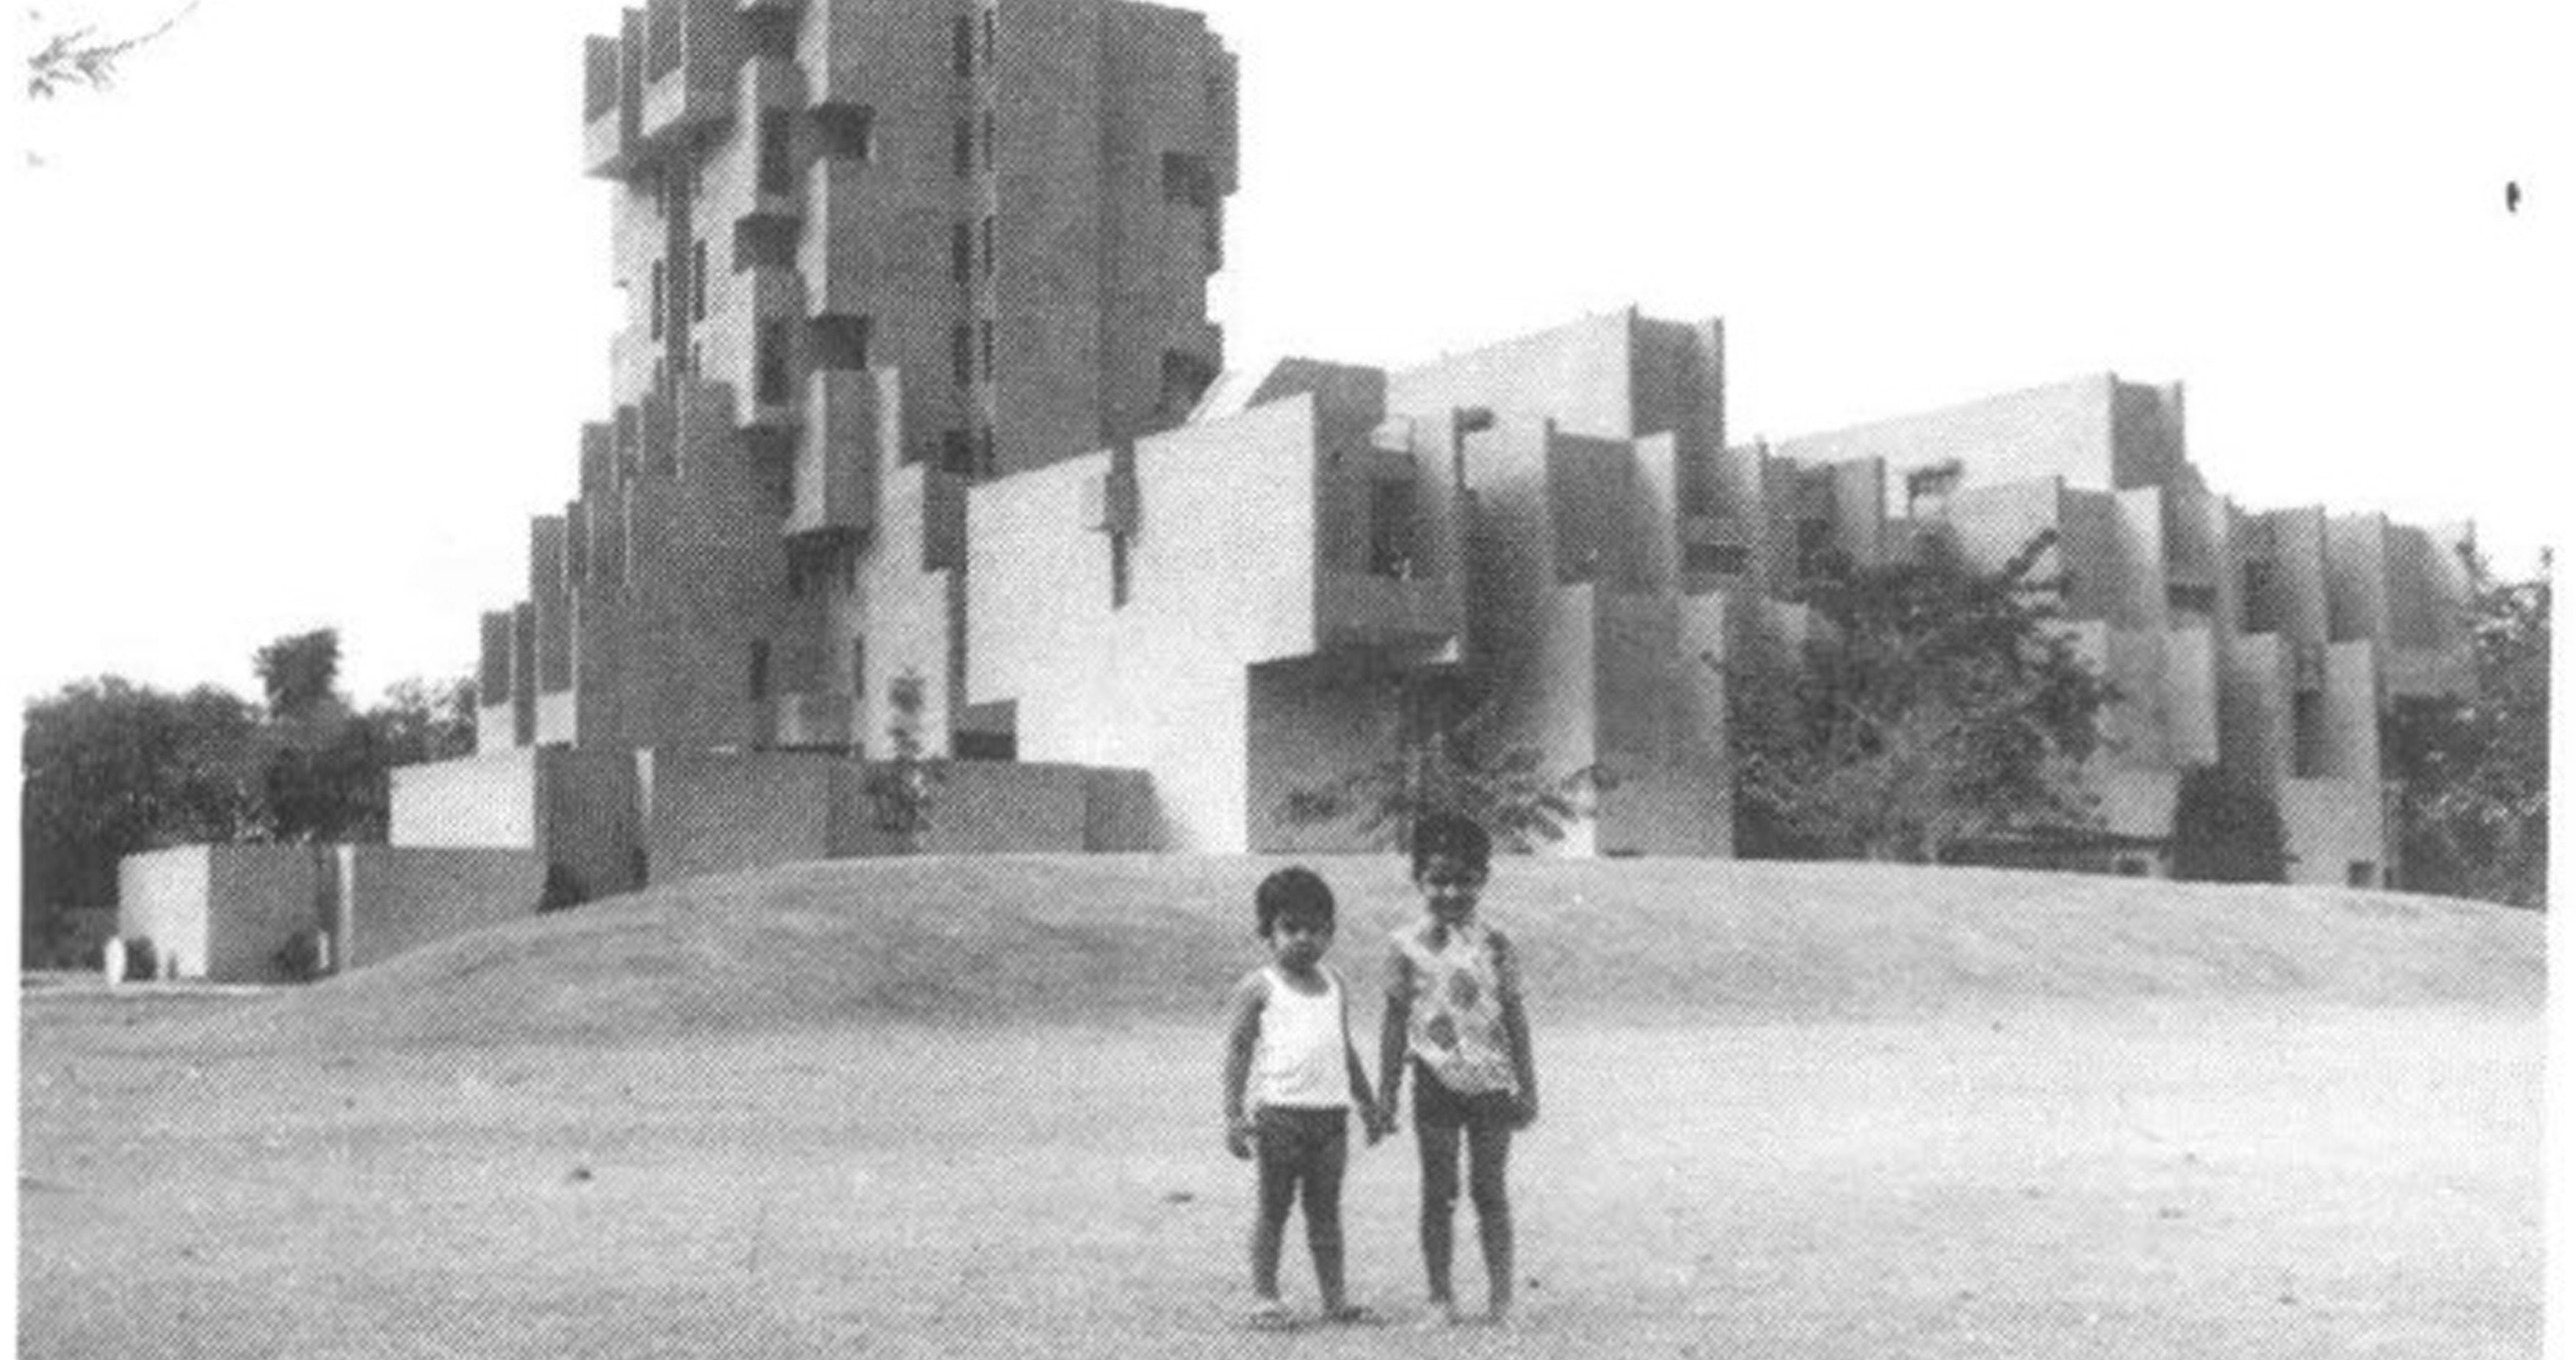 A journey of 100 years of Architecture in India   Part 02 - 1971-1973-Hostel-Tower-National-Dairy-Development-Board-Anand